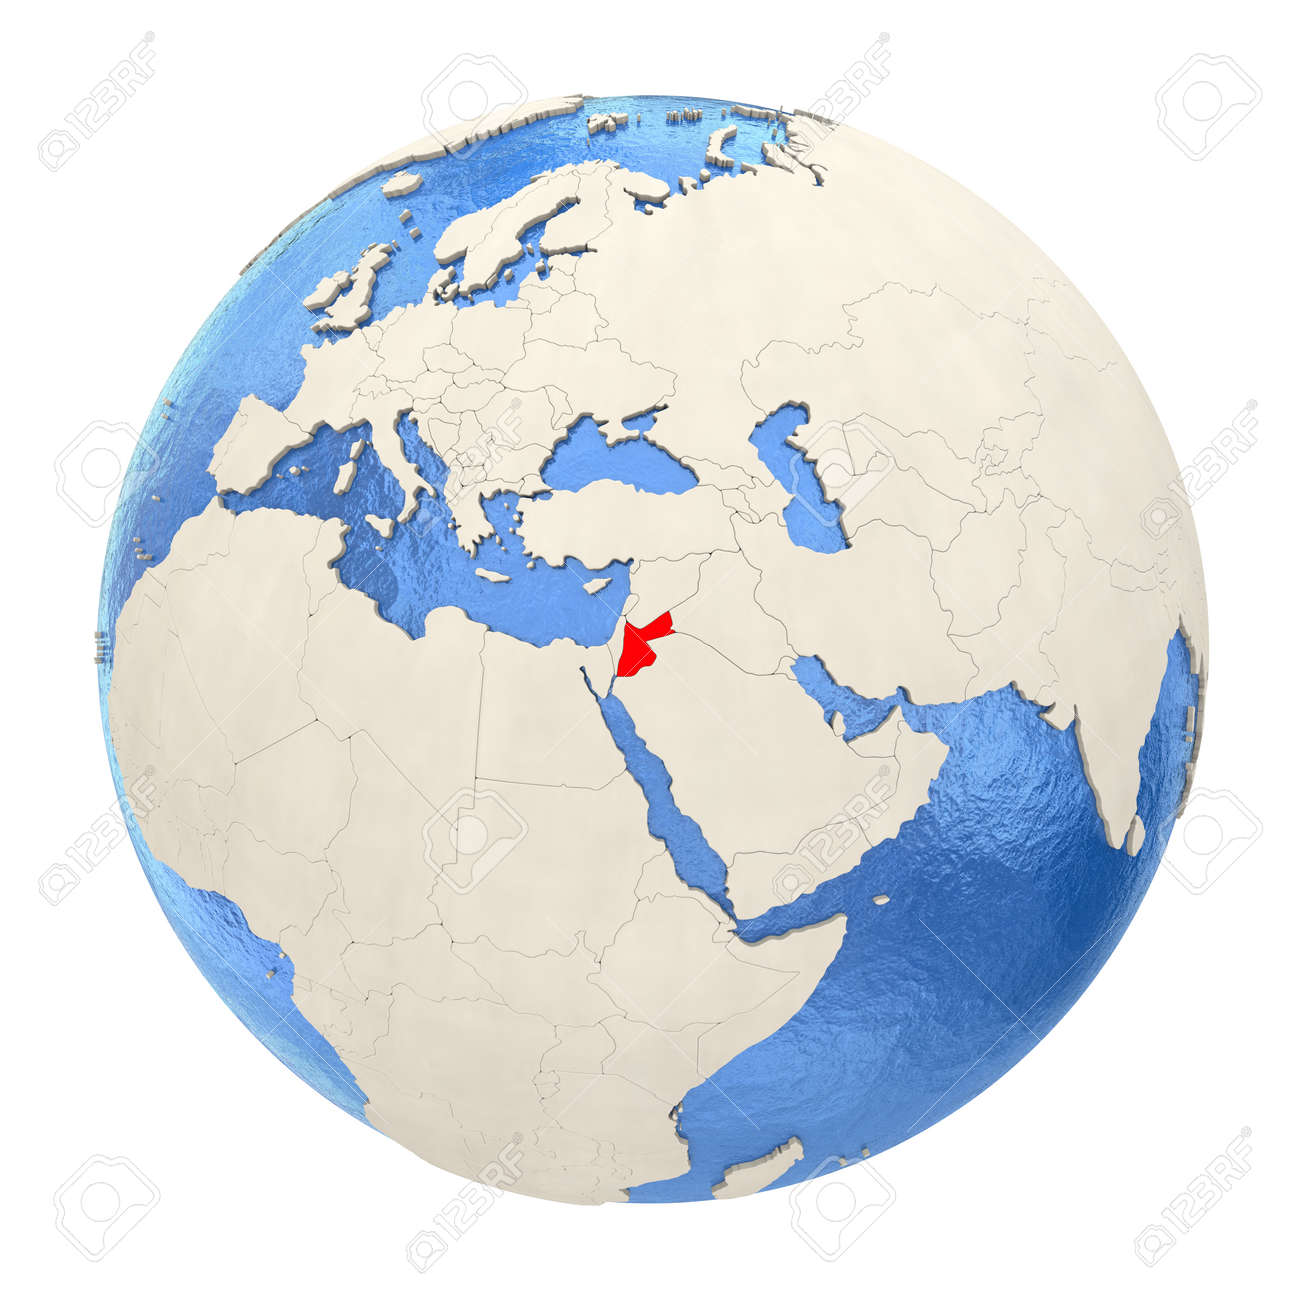 Political Map Of Jordan.Map Of Jordan On Political Globe With Watery Oceans And Embossed